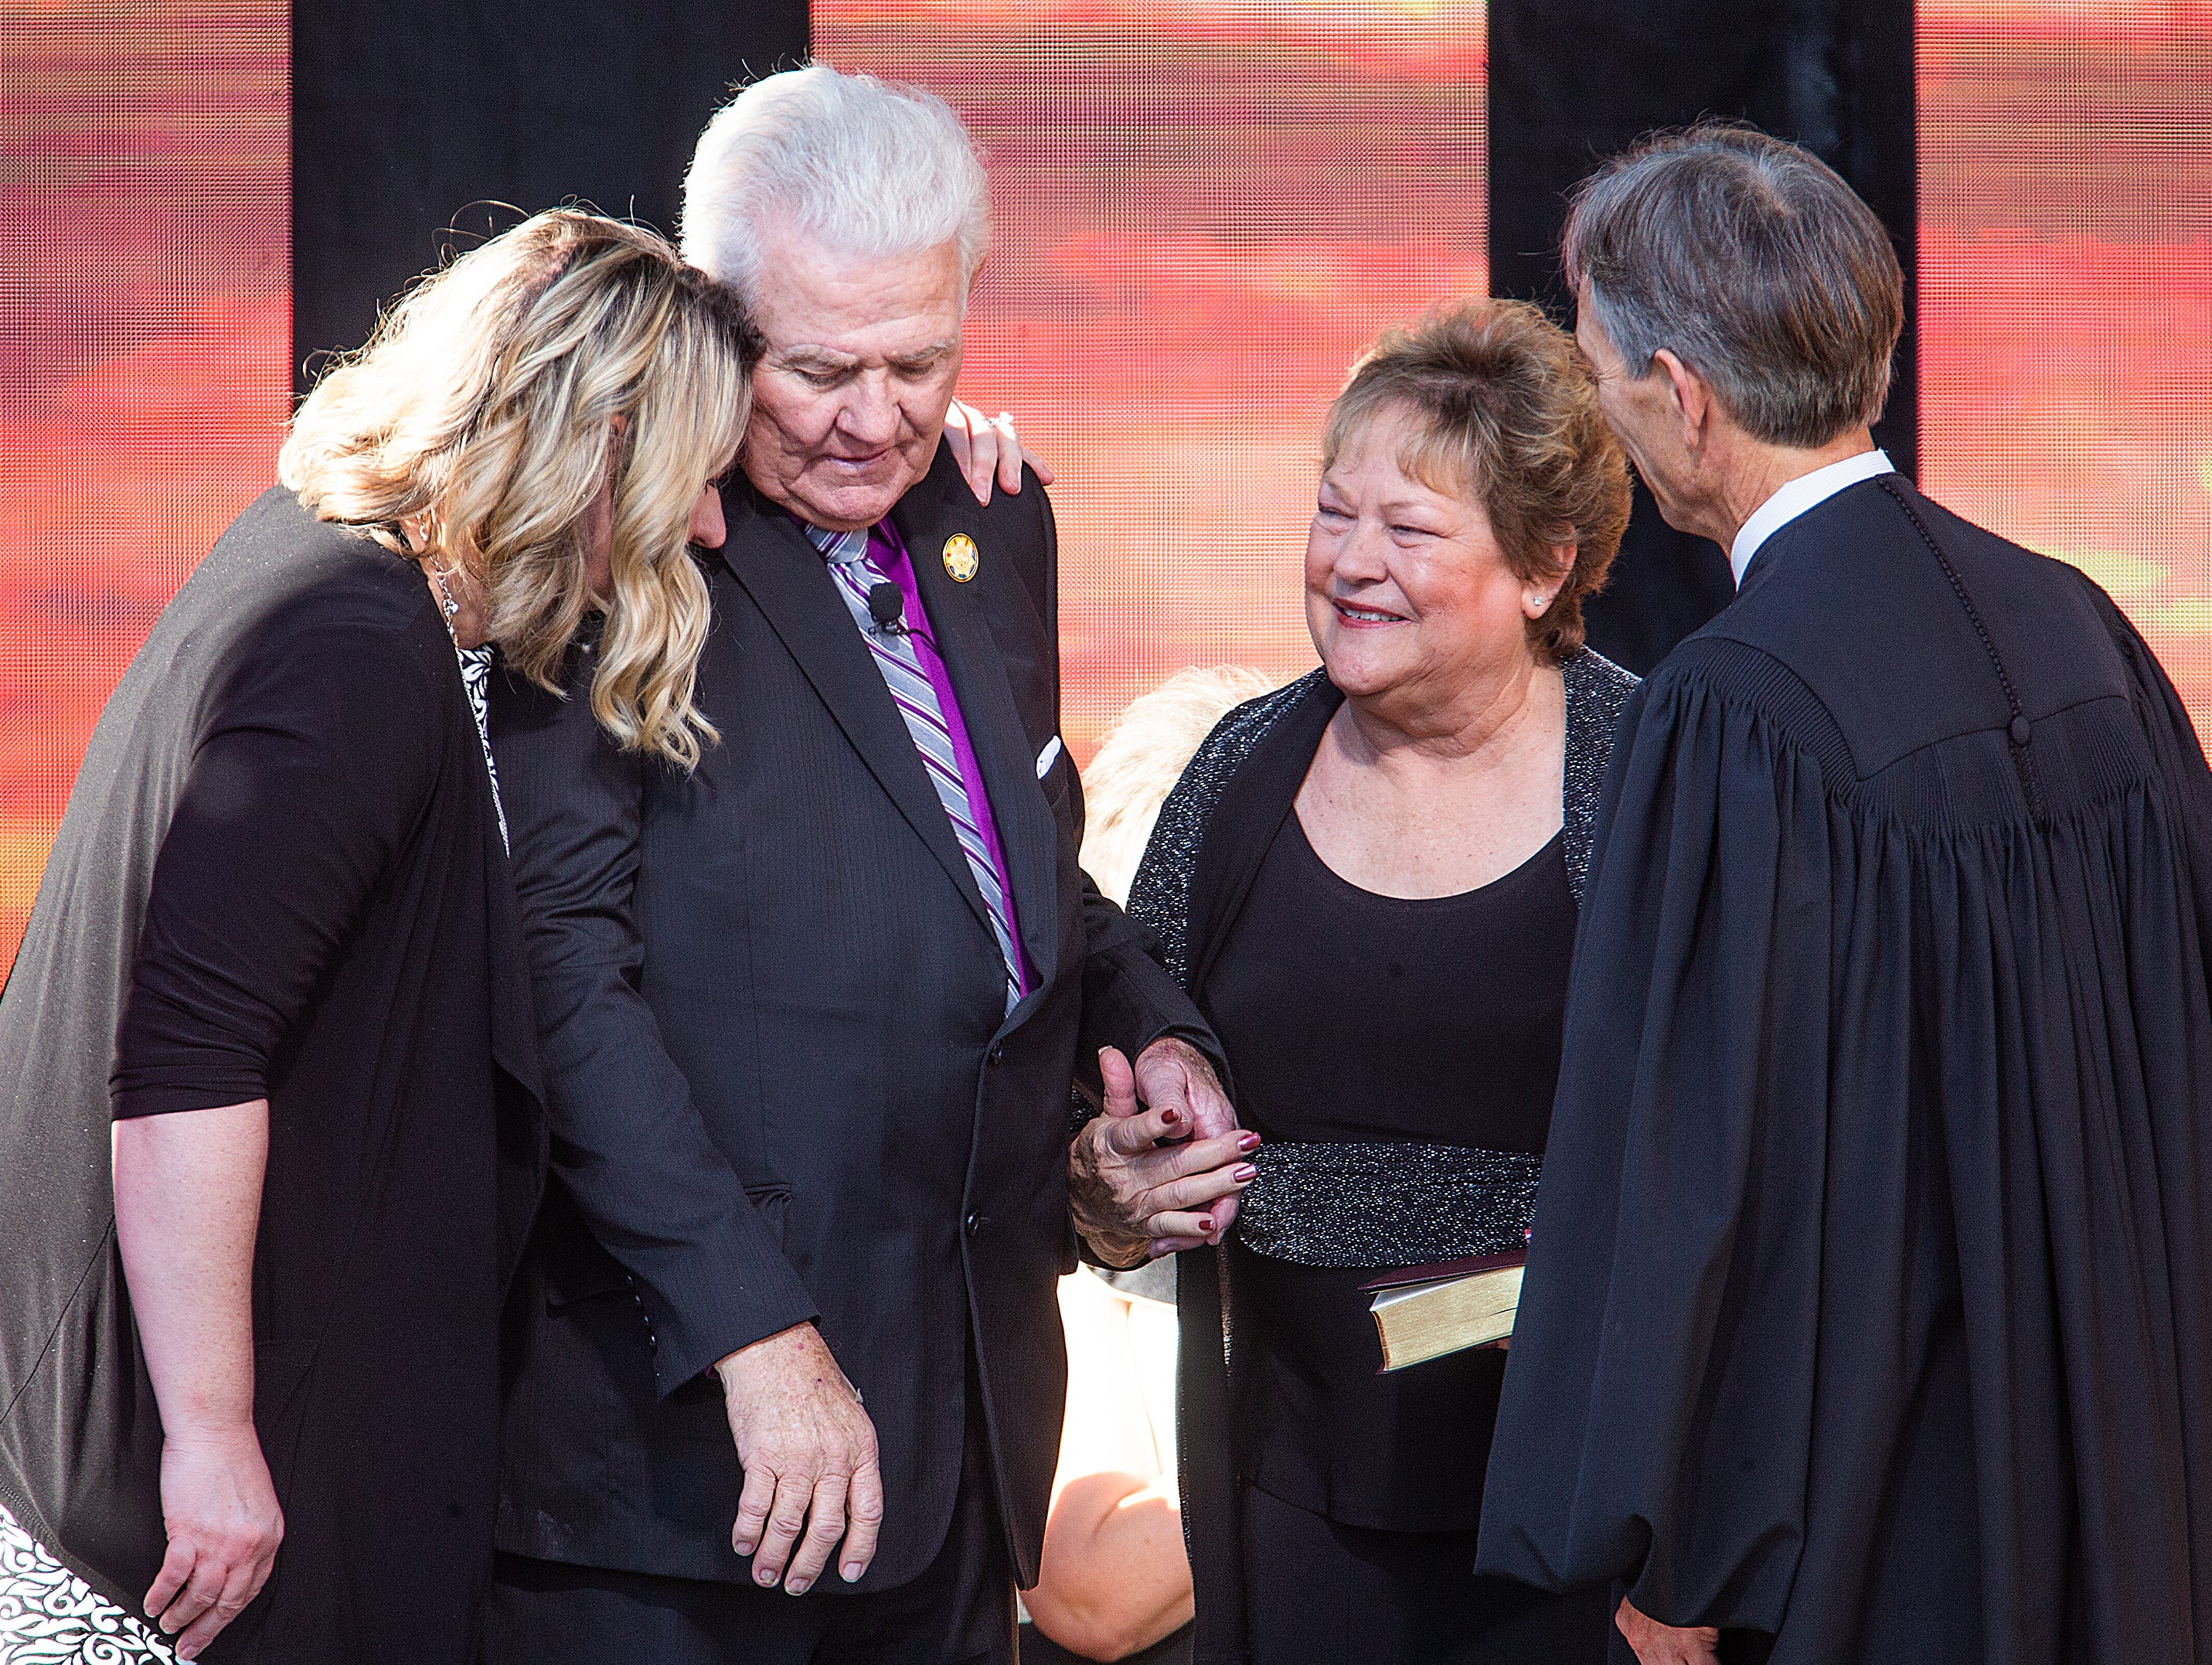 Arizona State Mine Inspector Joe Hart is surrounded by family after being sworn in by Arizona Supreme Court Chief Justice Scott Bales at the Arizona Capitol in Phoenix at the 2019 State of Arizona Inauguration ceremony on Jan. 7, 2019.  Gov. Doug Ducey , Secretary of State Katie Hobbs, Attorney General Mark Brnovich, State Treasurer Kimberly Yee, Superintendent of Public Instruction Kathy Hoffman and Hart were all sworn in to office during the ceremony.